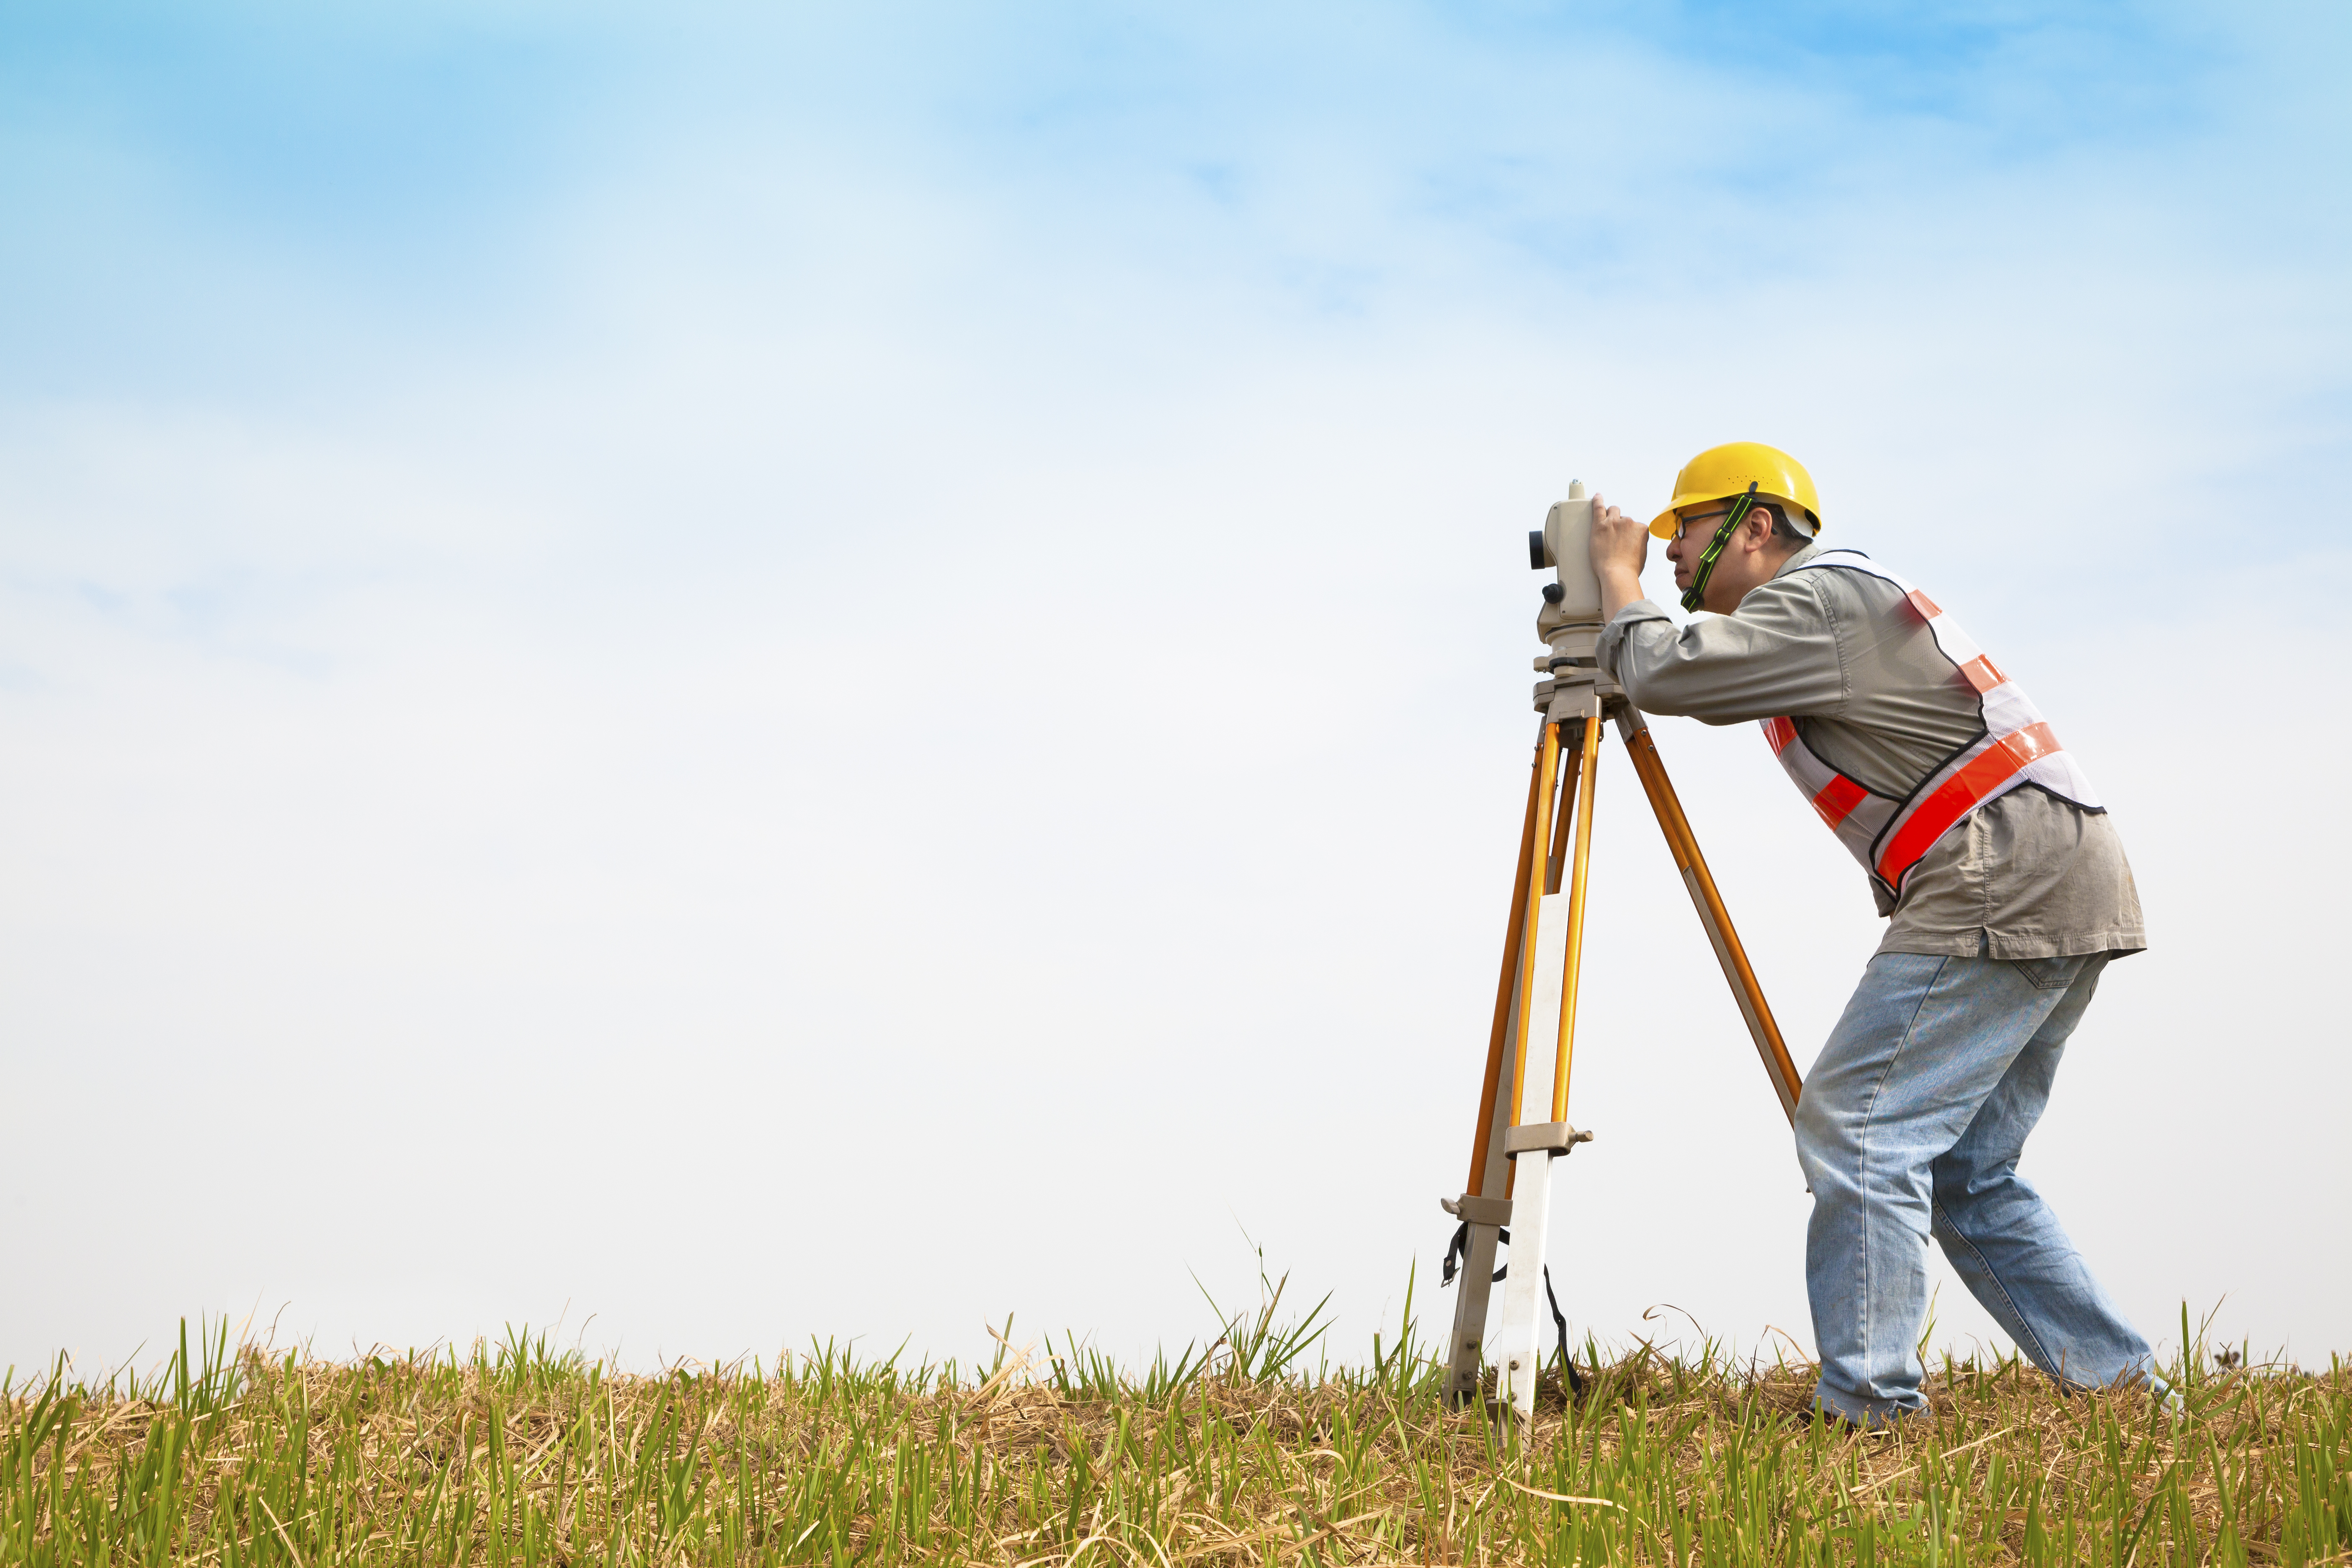 Land_Surveyor_Acquires_Property_Information_with_DataTree.com_-1